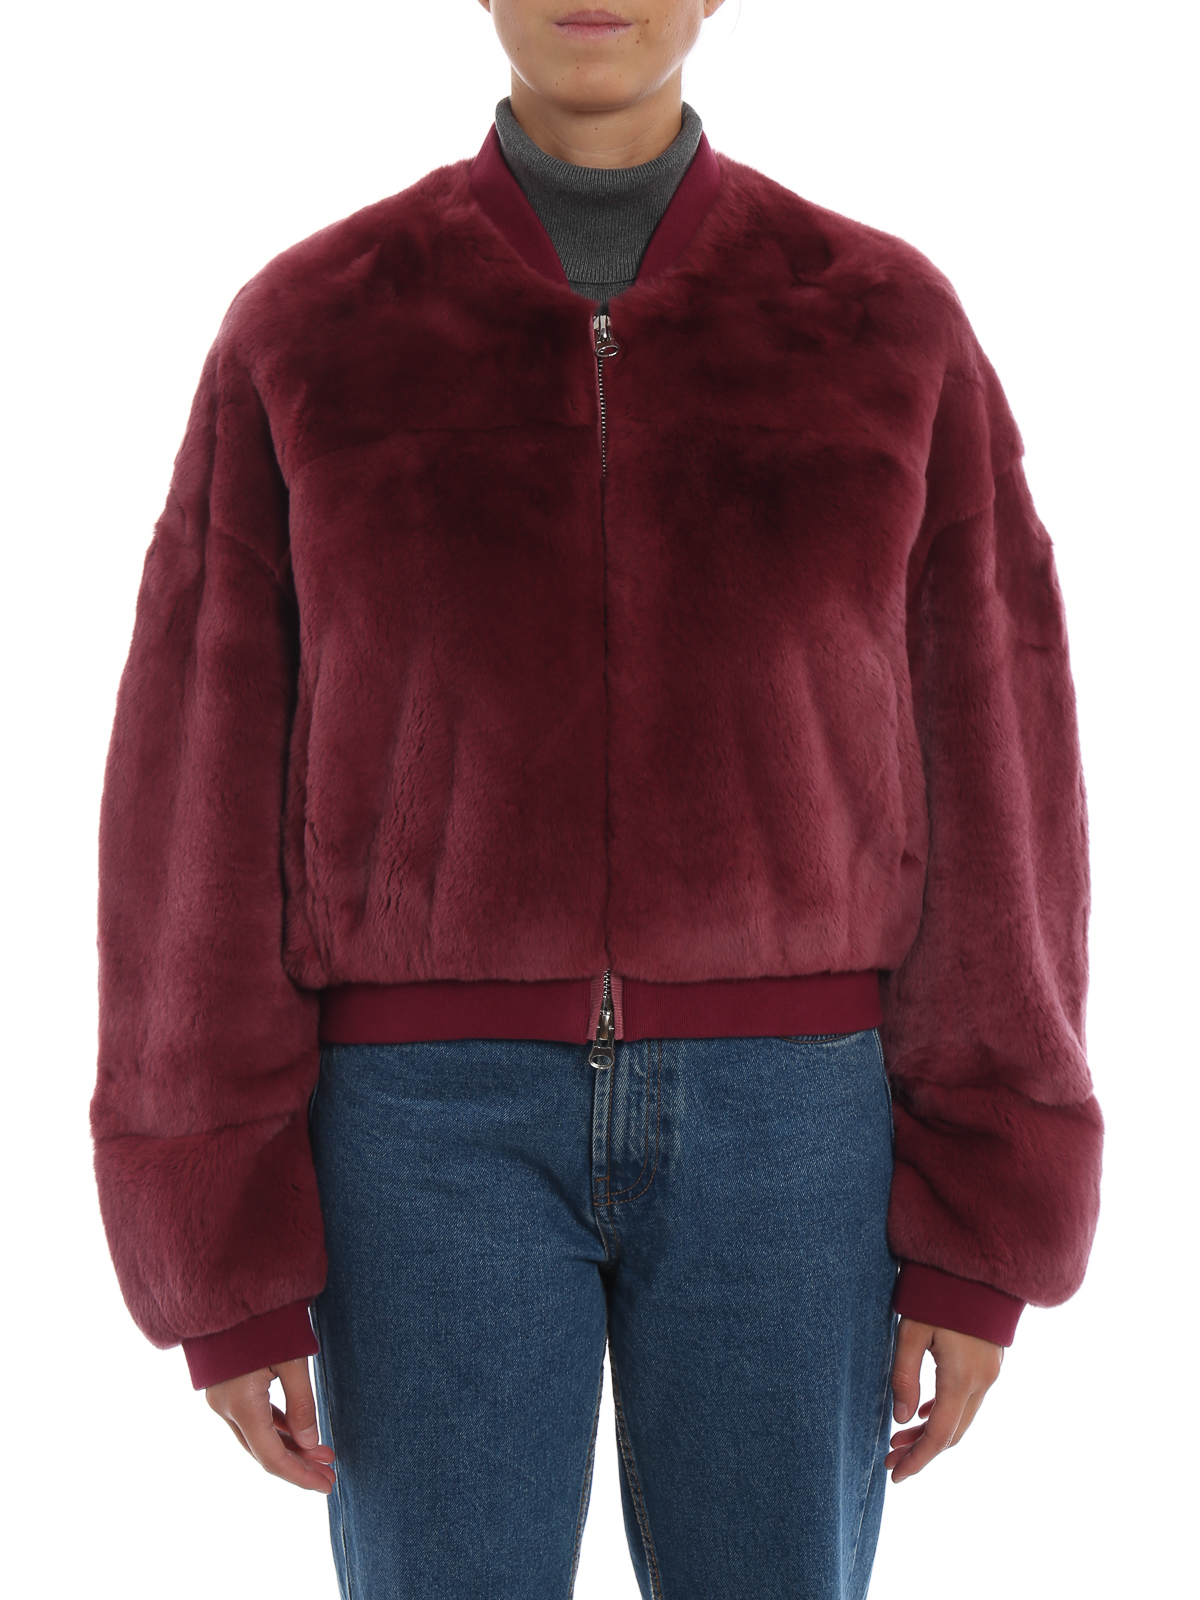 S W O R D 6 6 44 Real Fur Cropped Bomber Jacket Fur Shearling